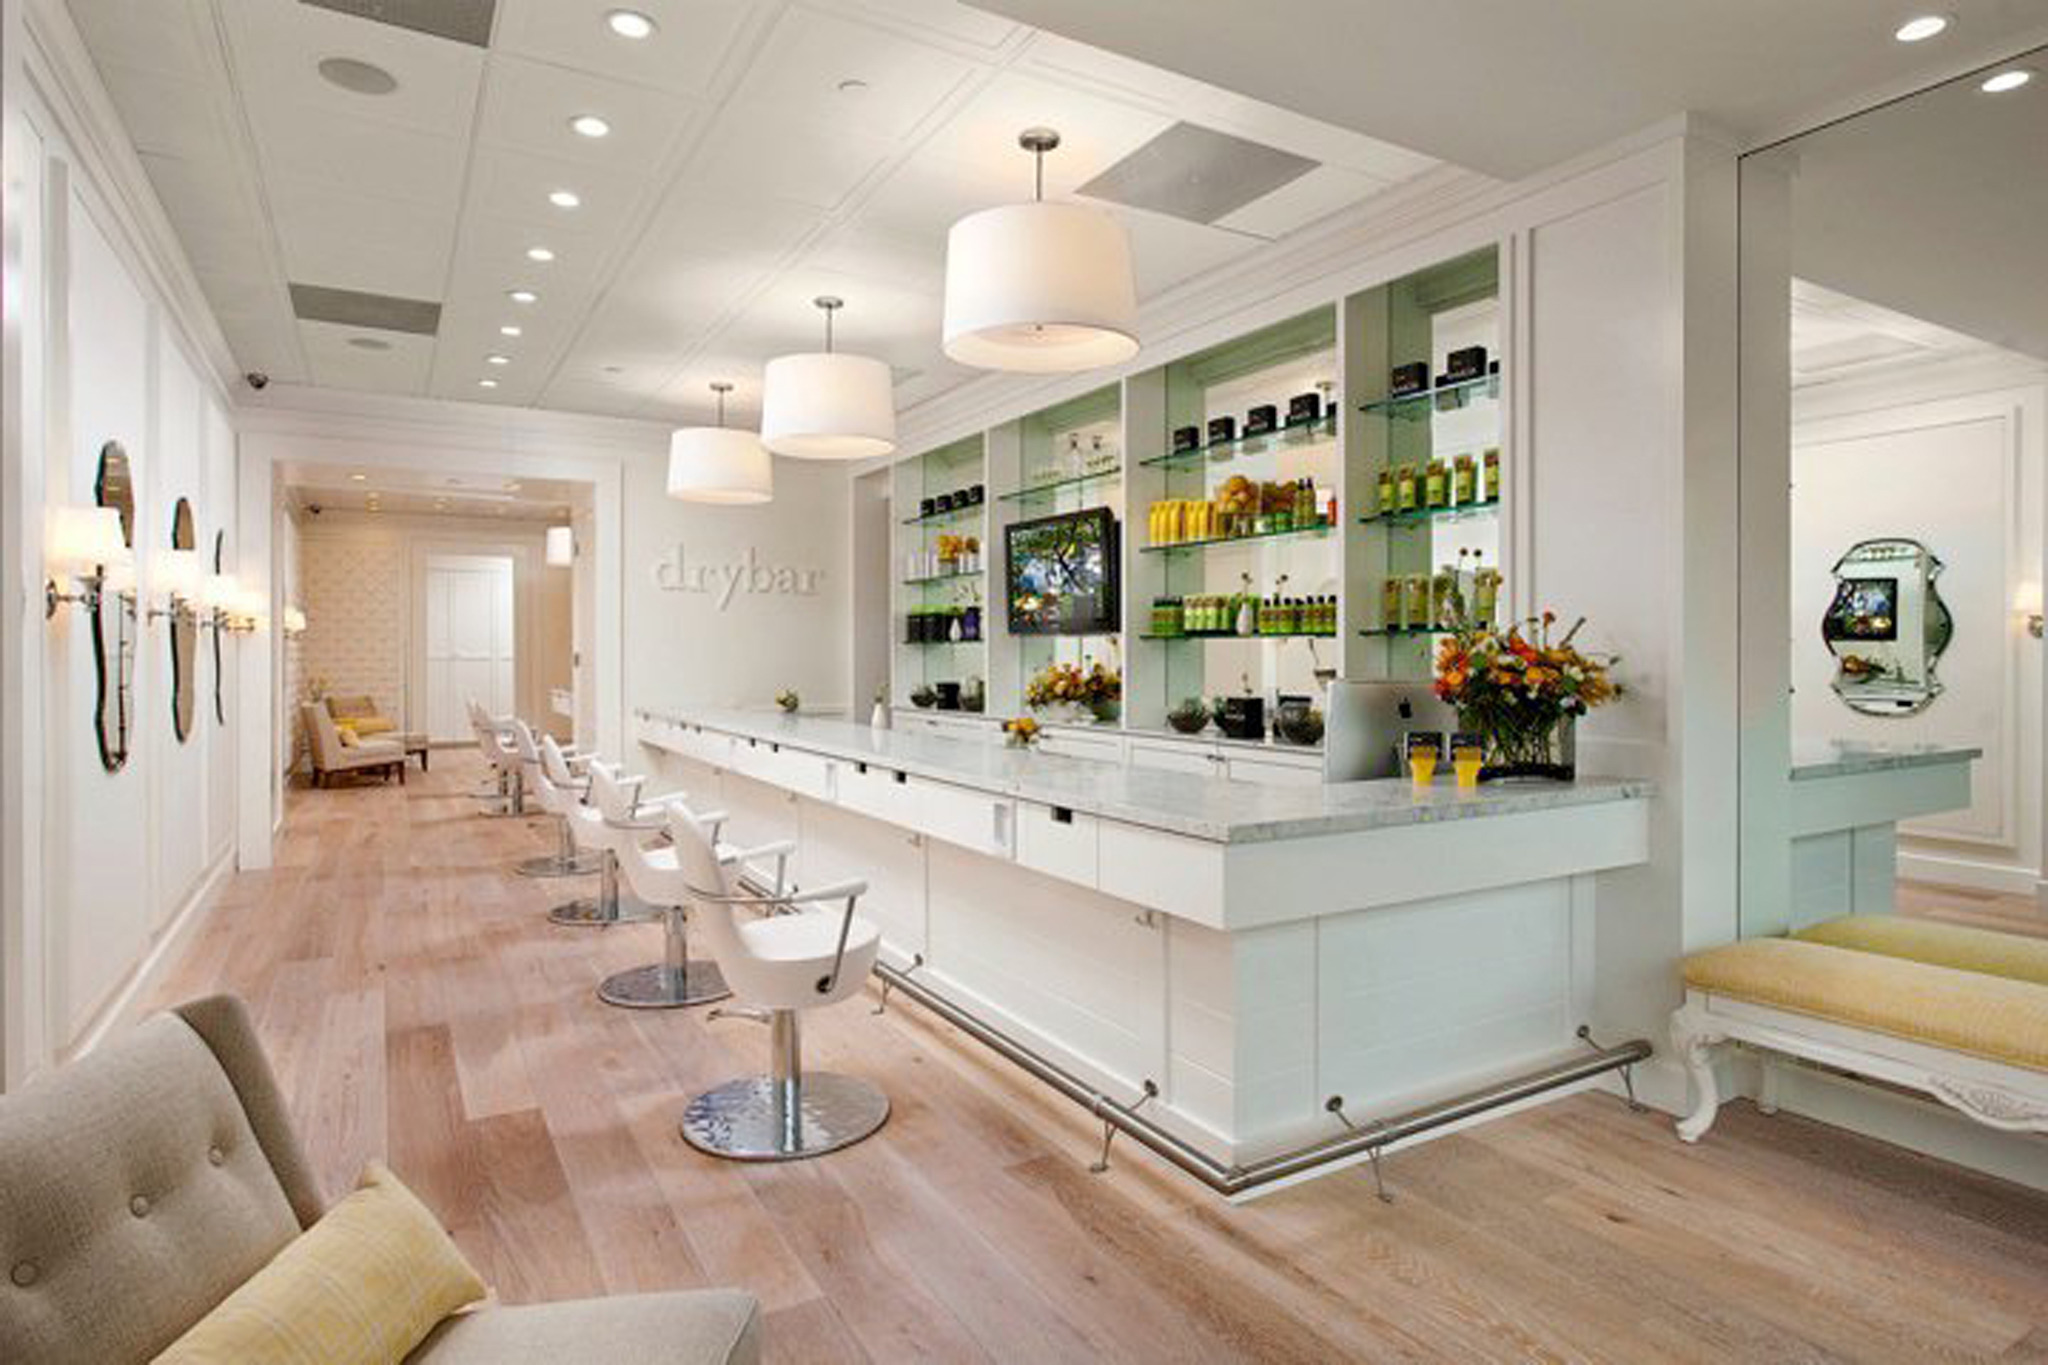 Best blow dry bars in los angeles for A beautiful you salon